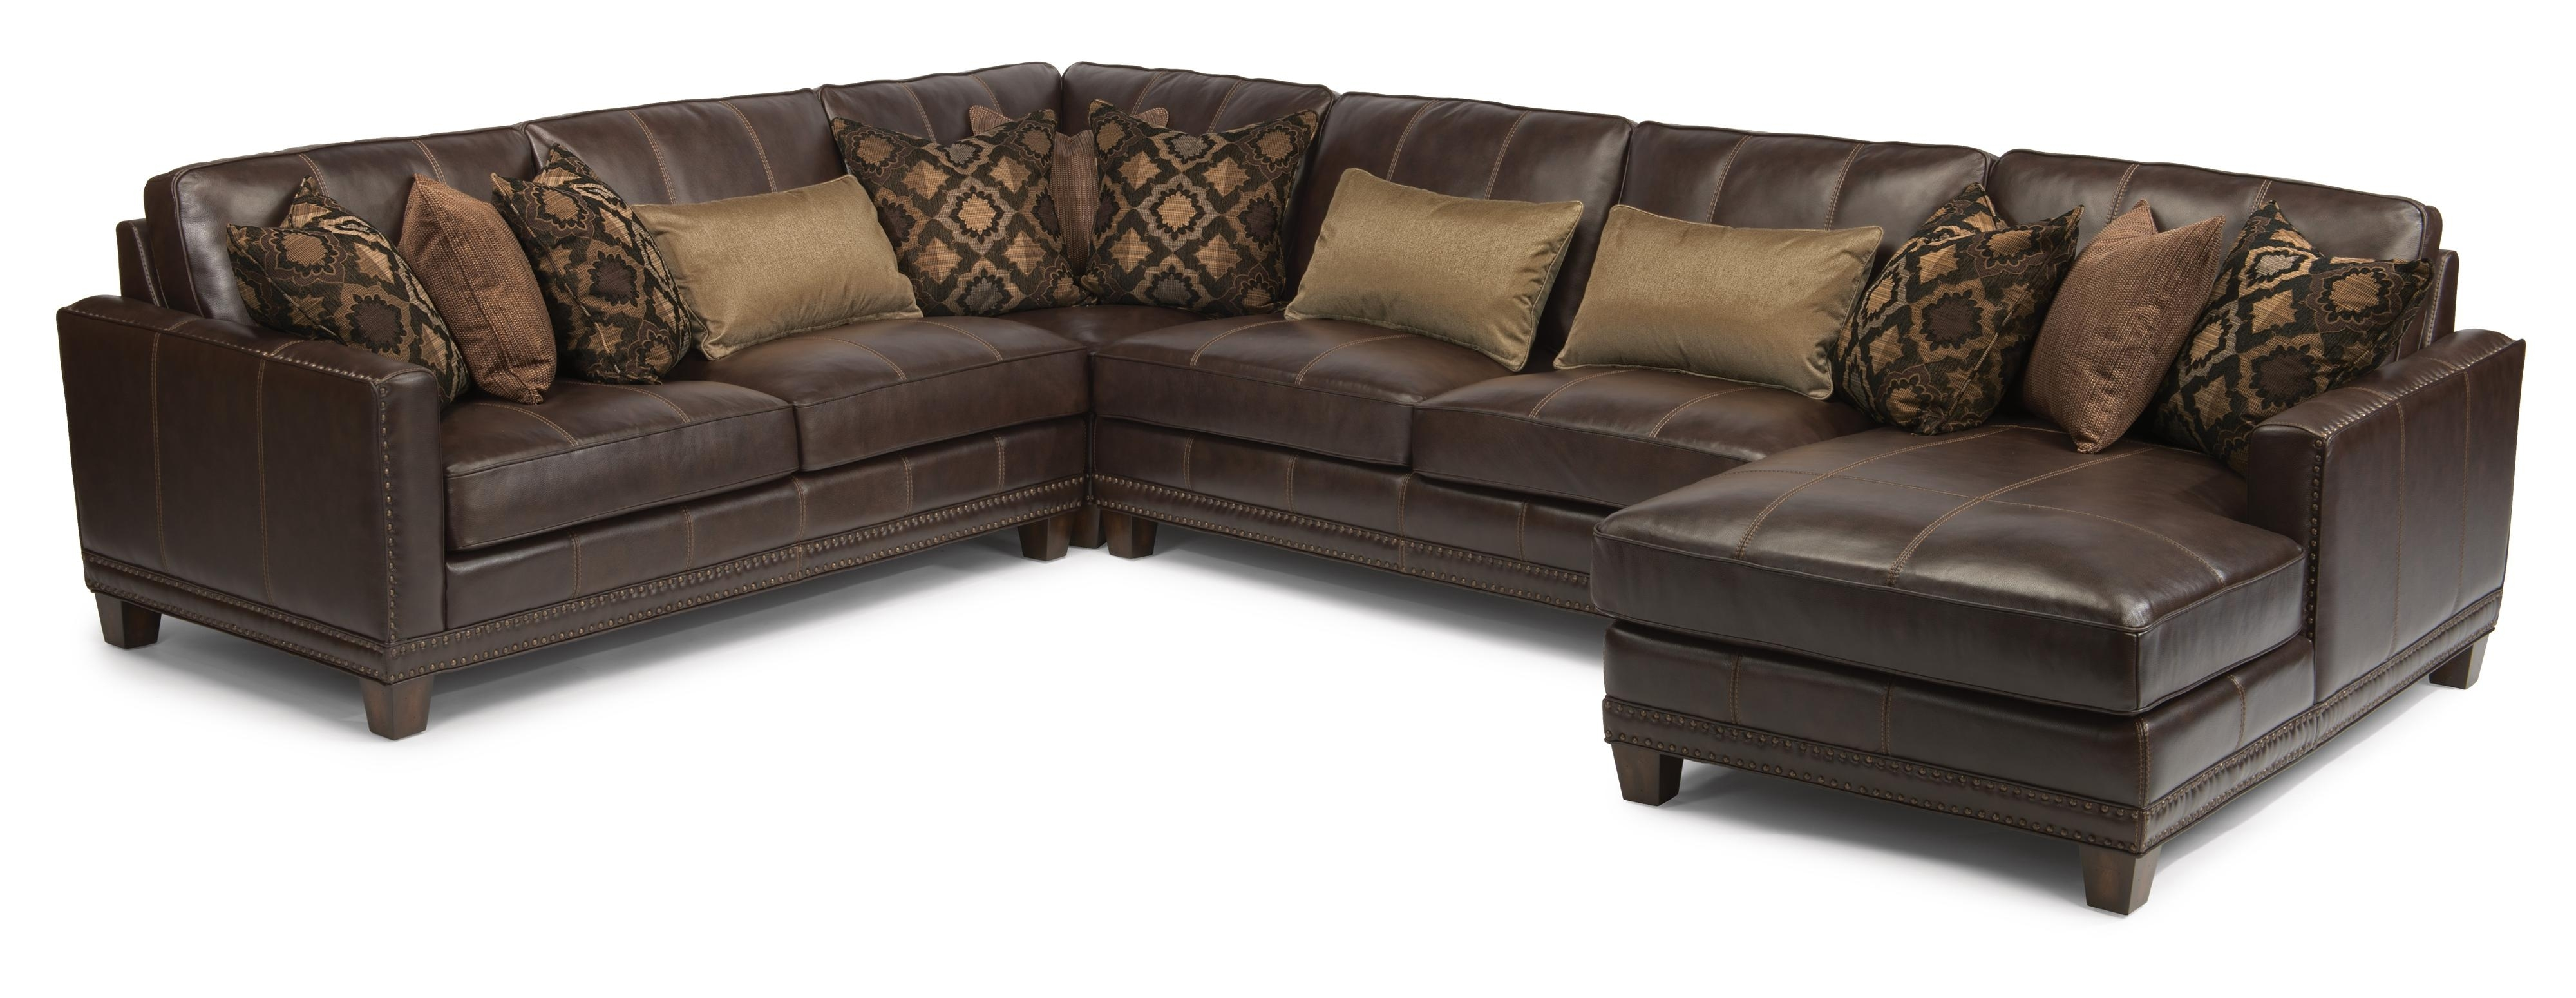 Flexsteel Latitudes - Port Royal Transitional Four Piece Sectional inside Gordon 3 Piece Sectionals With Raf Chaise (Image 10 of 30)